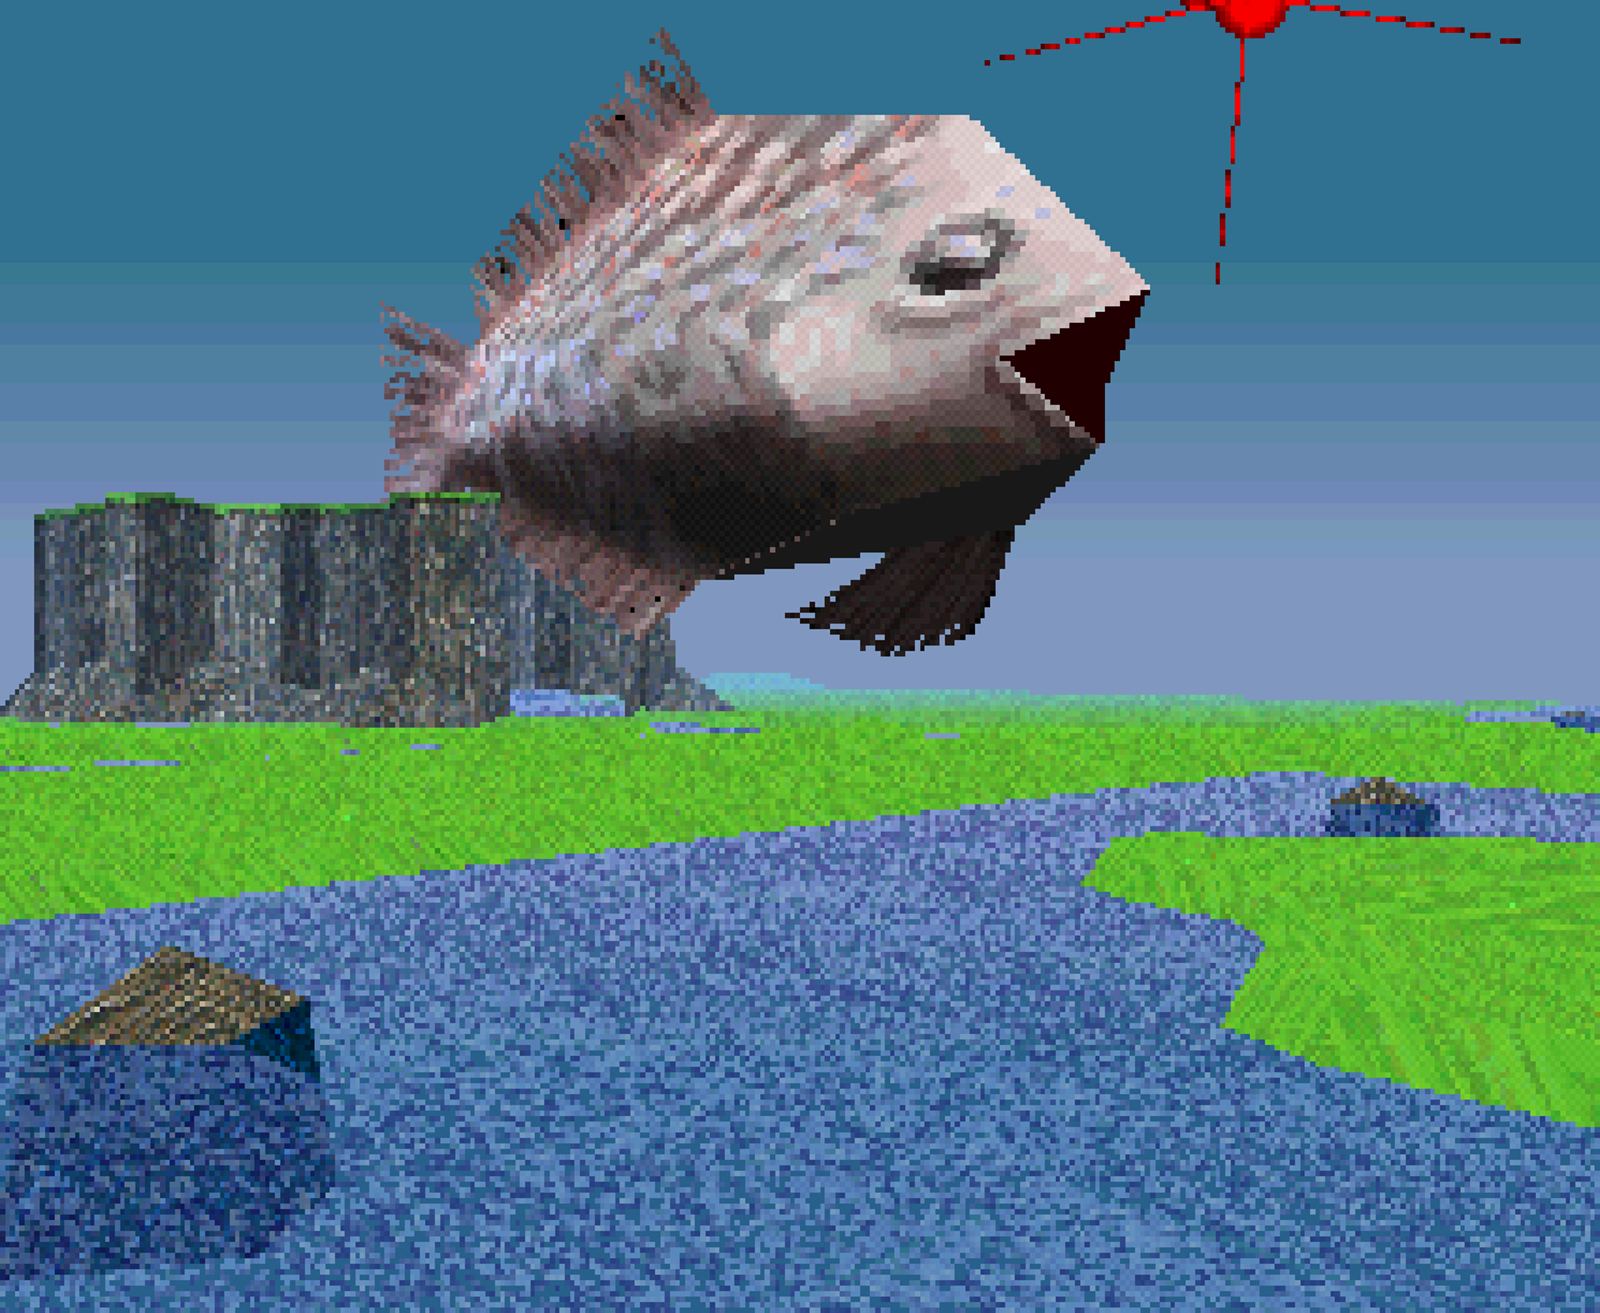 A fish that transcended water... Makes you think.